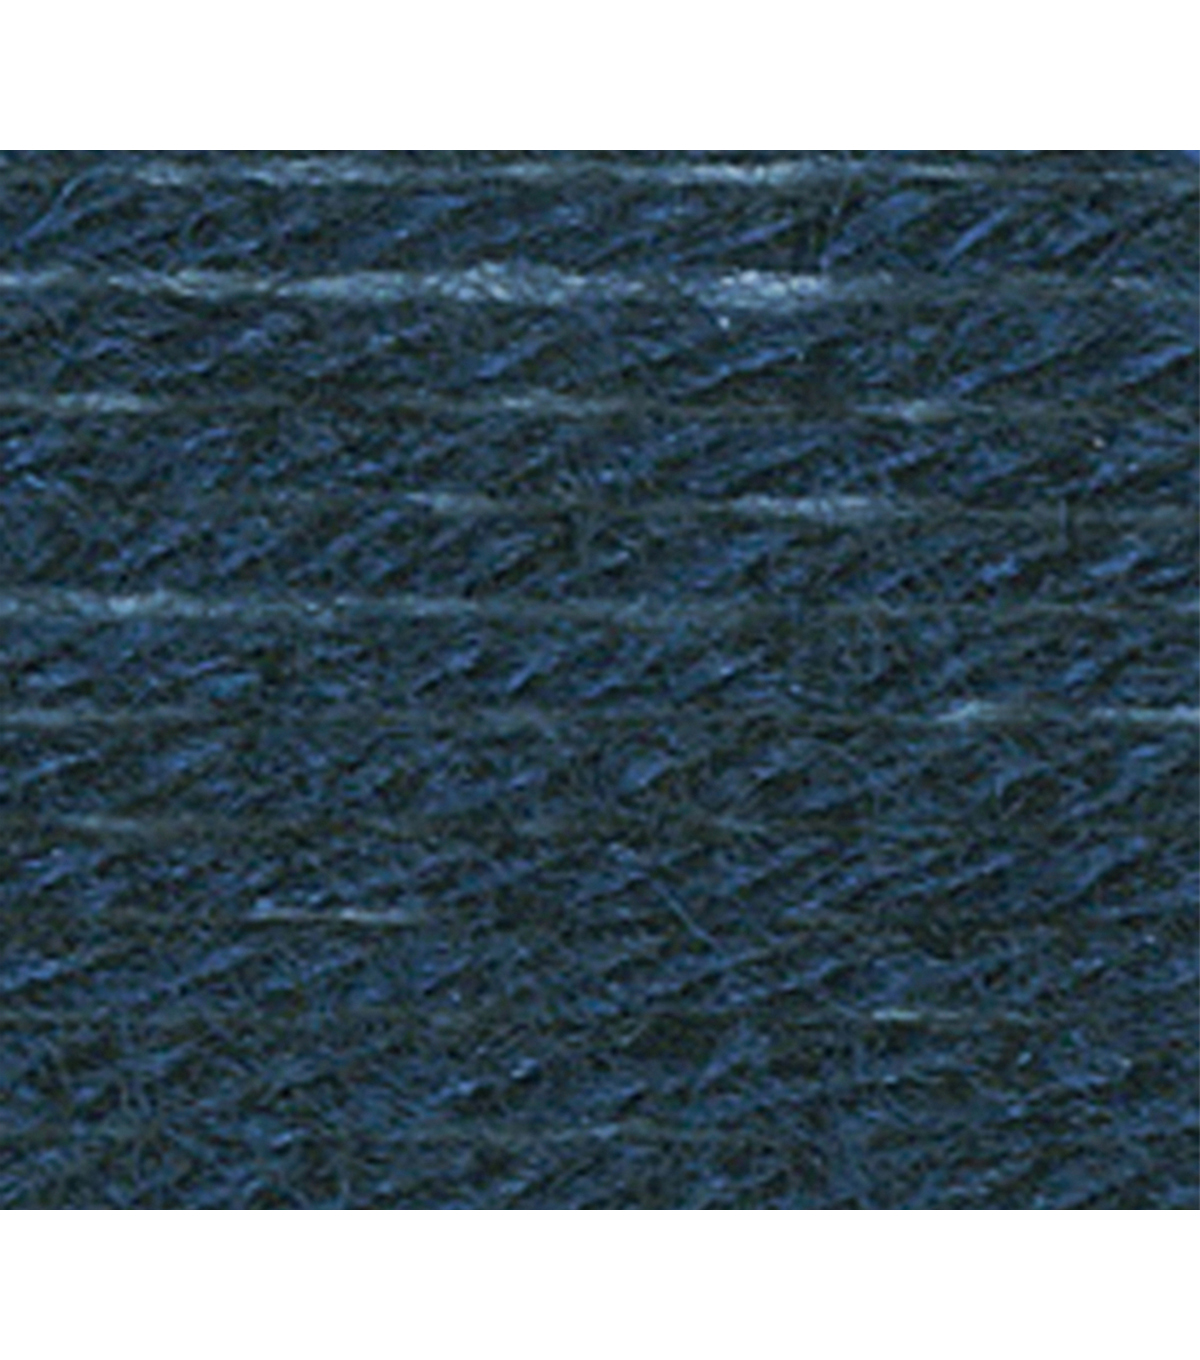 Lion Brand Wool-Ease Yarn, Navy